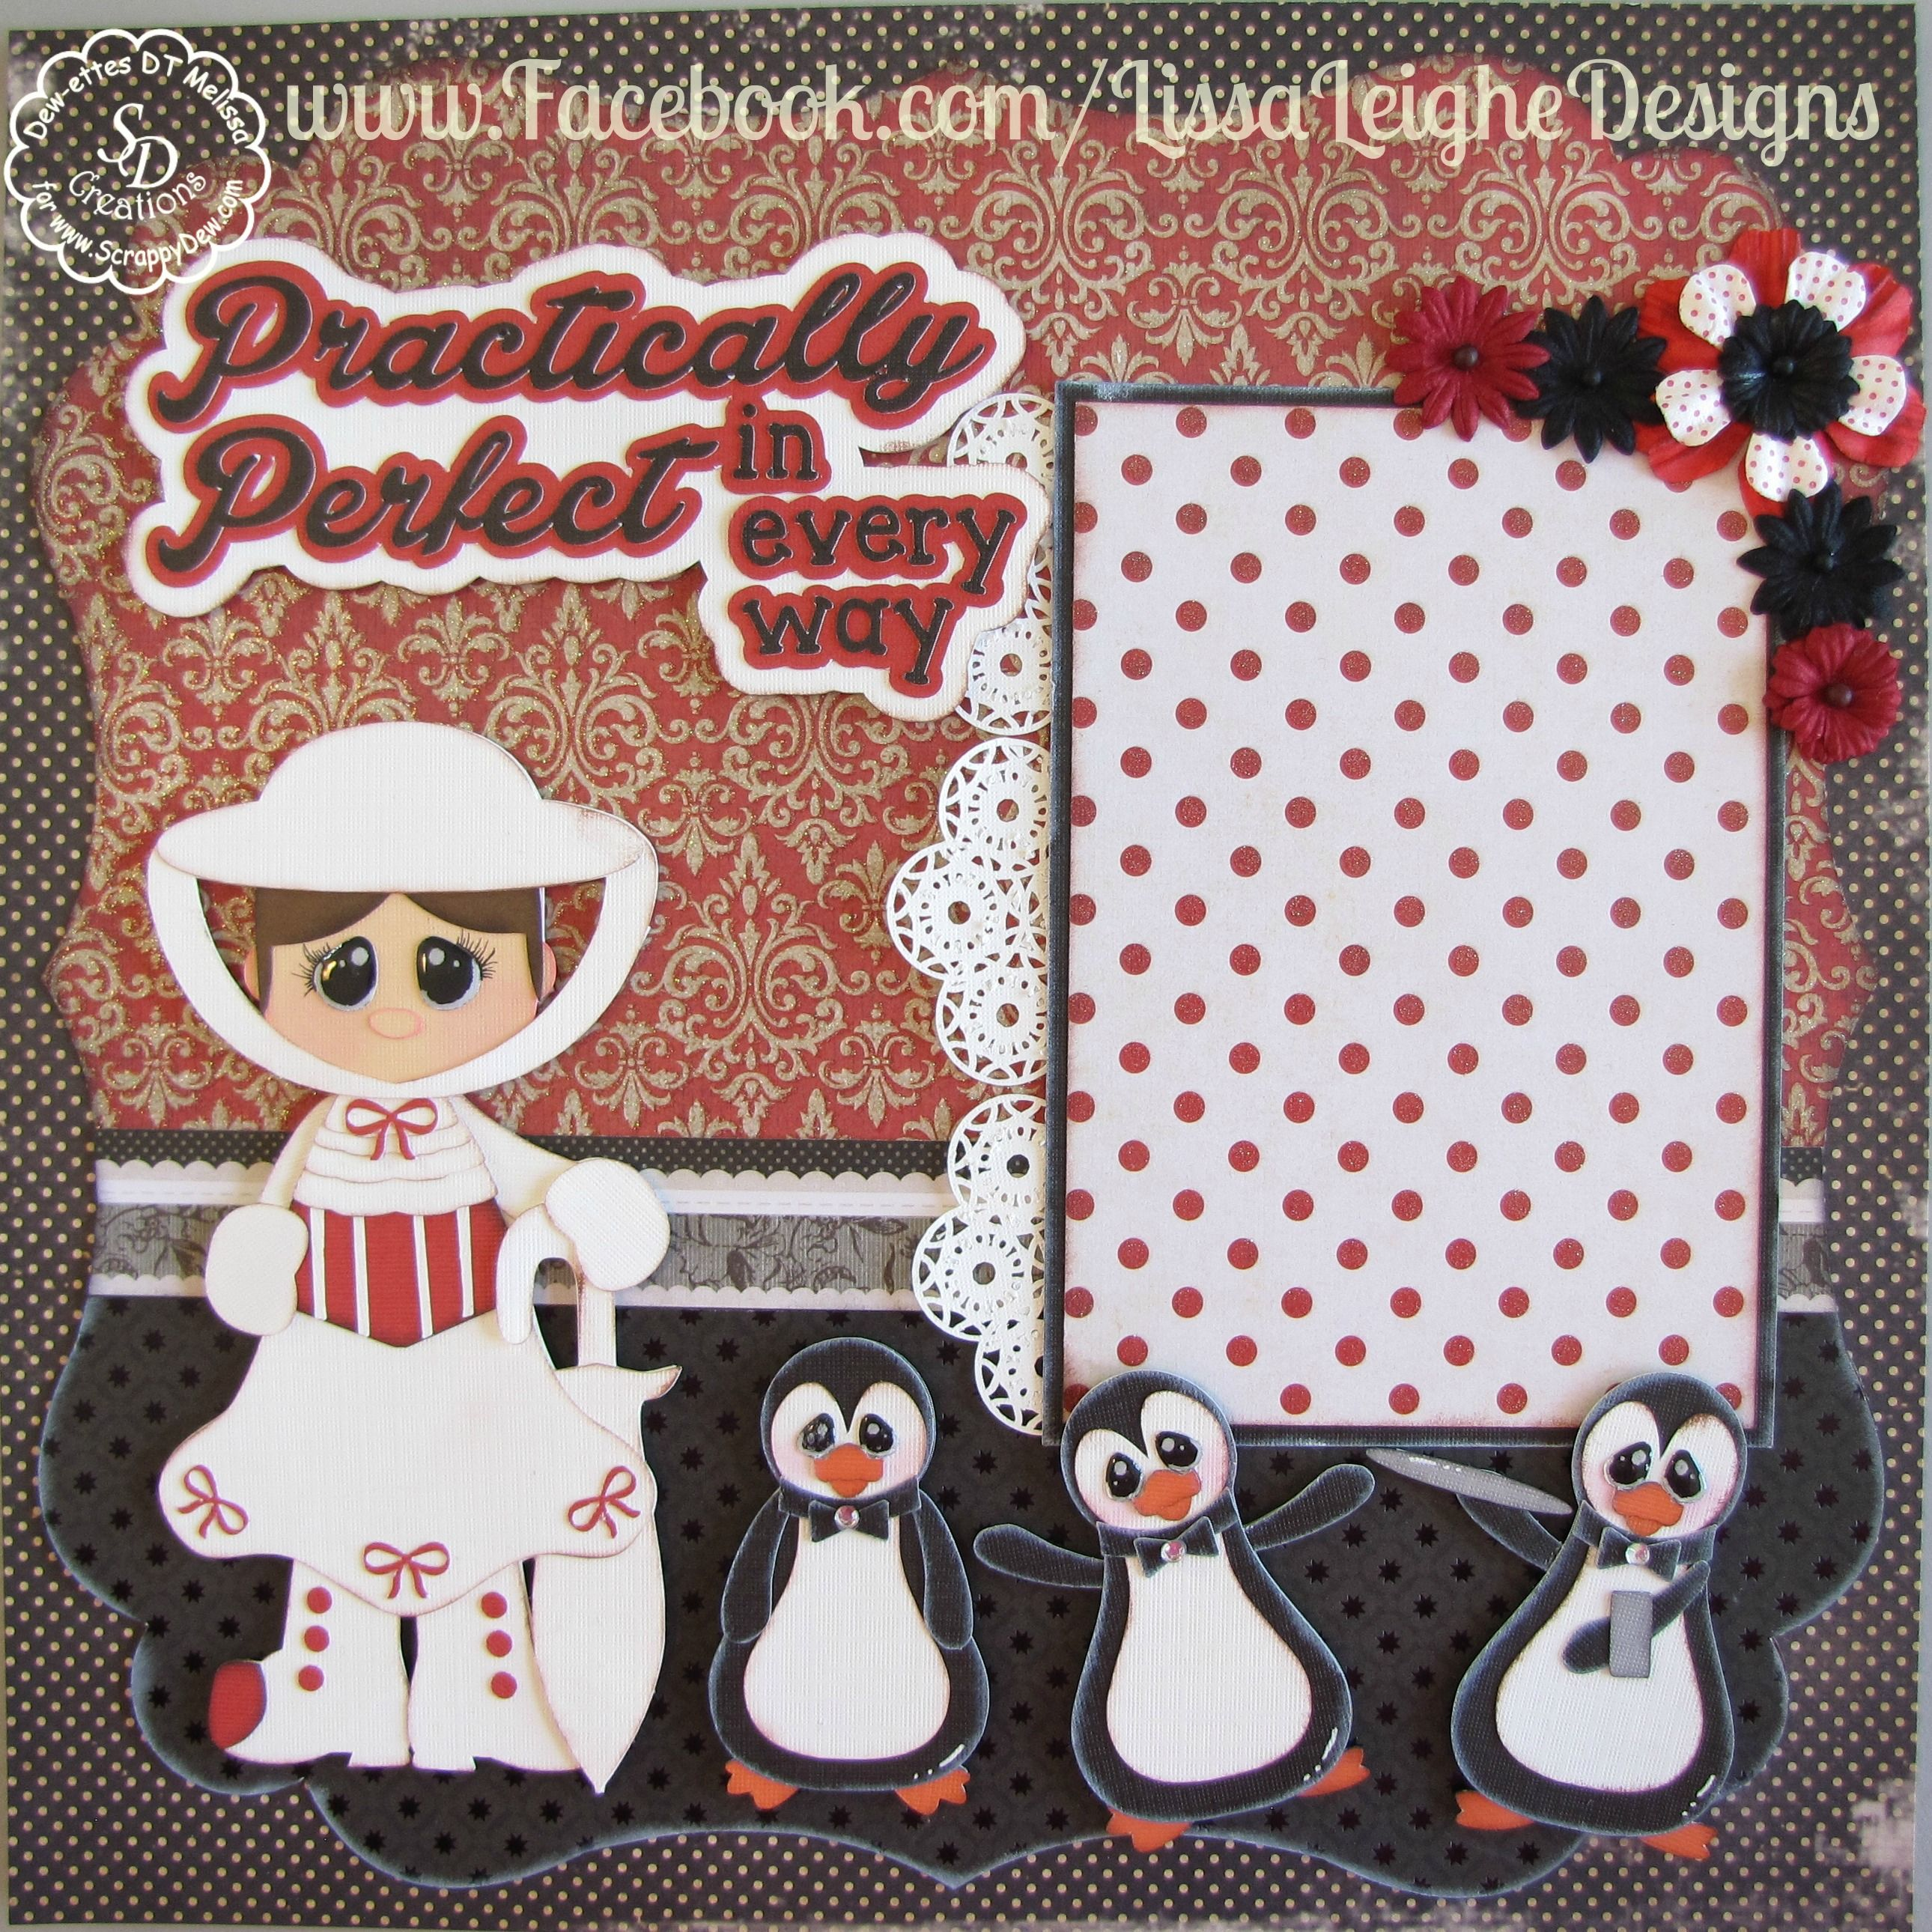 Facebooklissaleighedesigns scrappydew paper piecings facebooklissaleighedesigns scrappydew paper piecings layout mary poppins scrapbooking paper crafts jeuxipadfo Choice Image